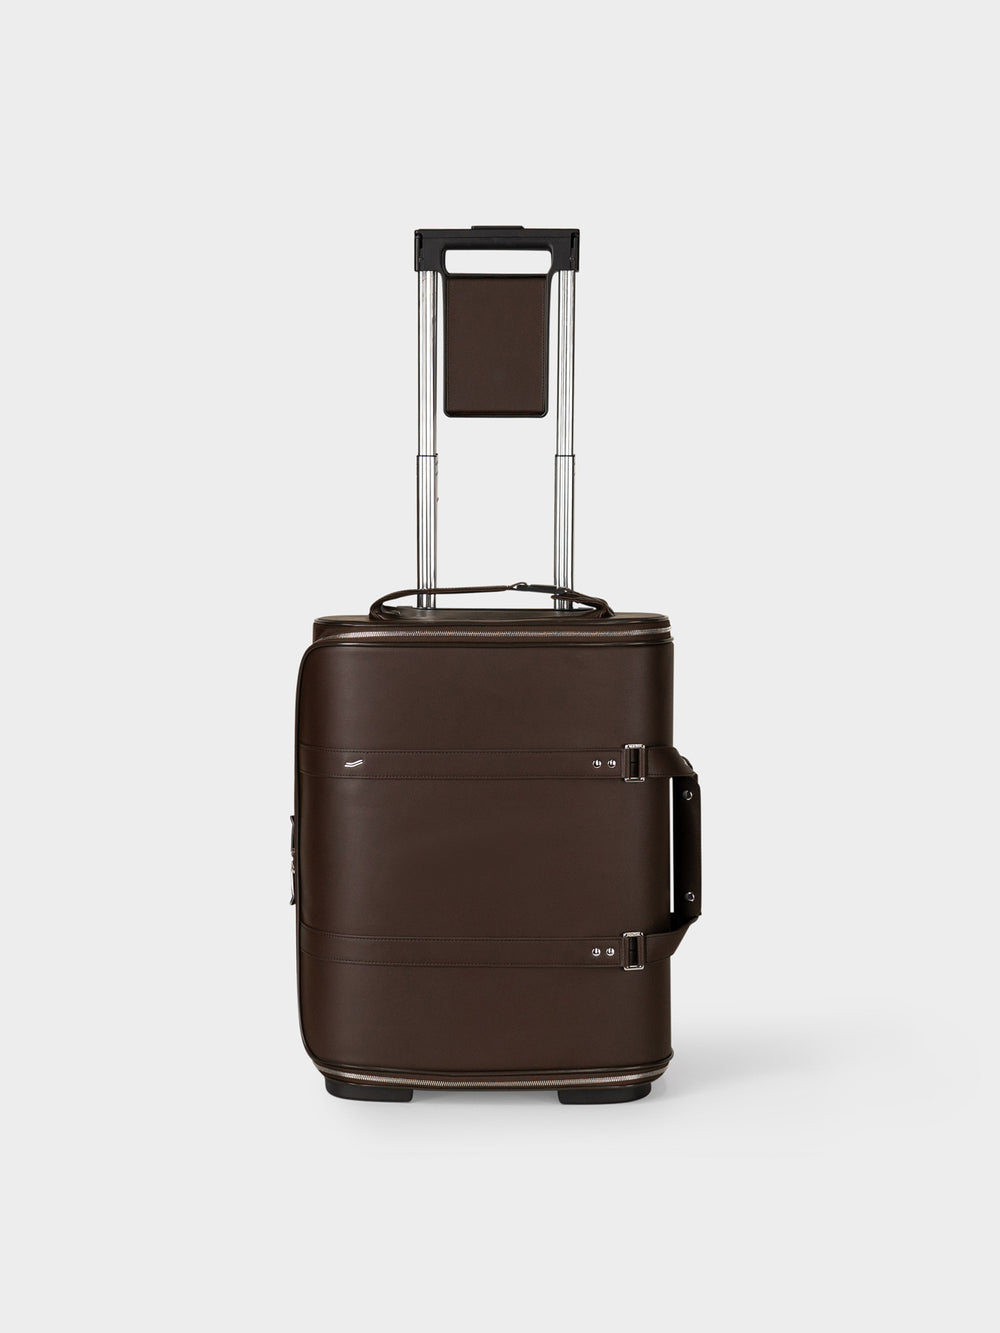 f38 carry on luggage  for business in brown leather braunes leder